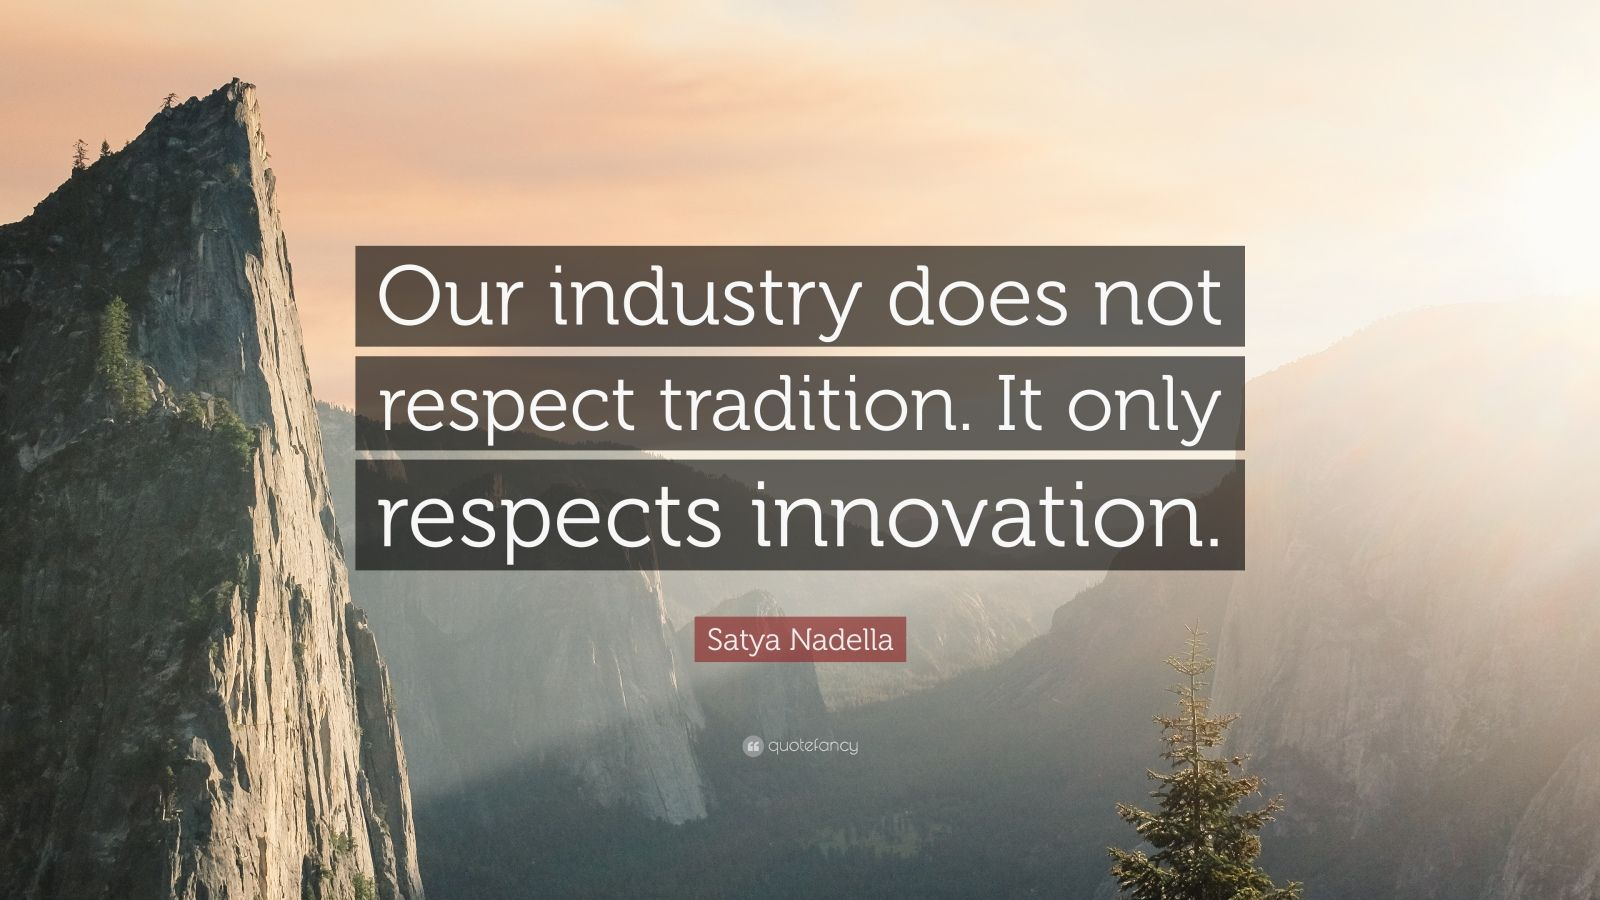 Elon Musk Quotes Wallpaper Satya Nadella Quote Our Industry Does Not Respect